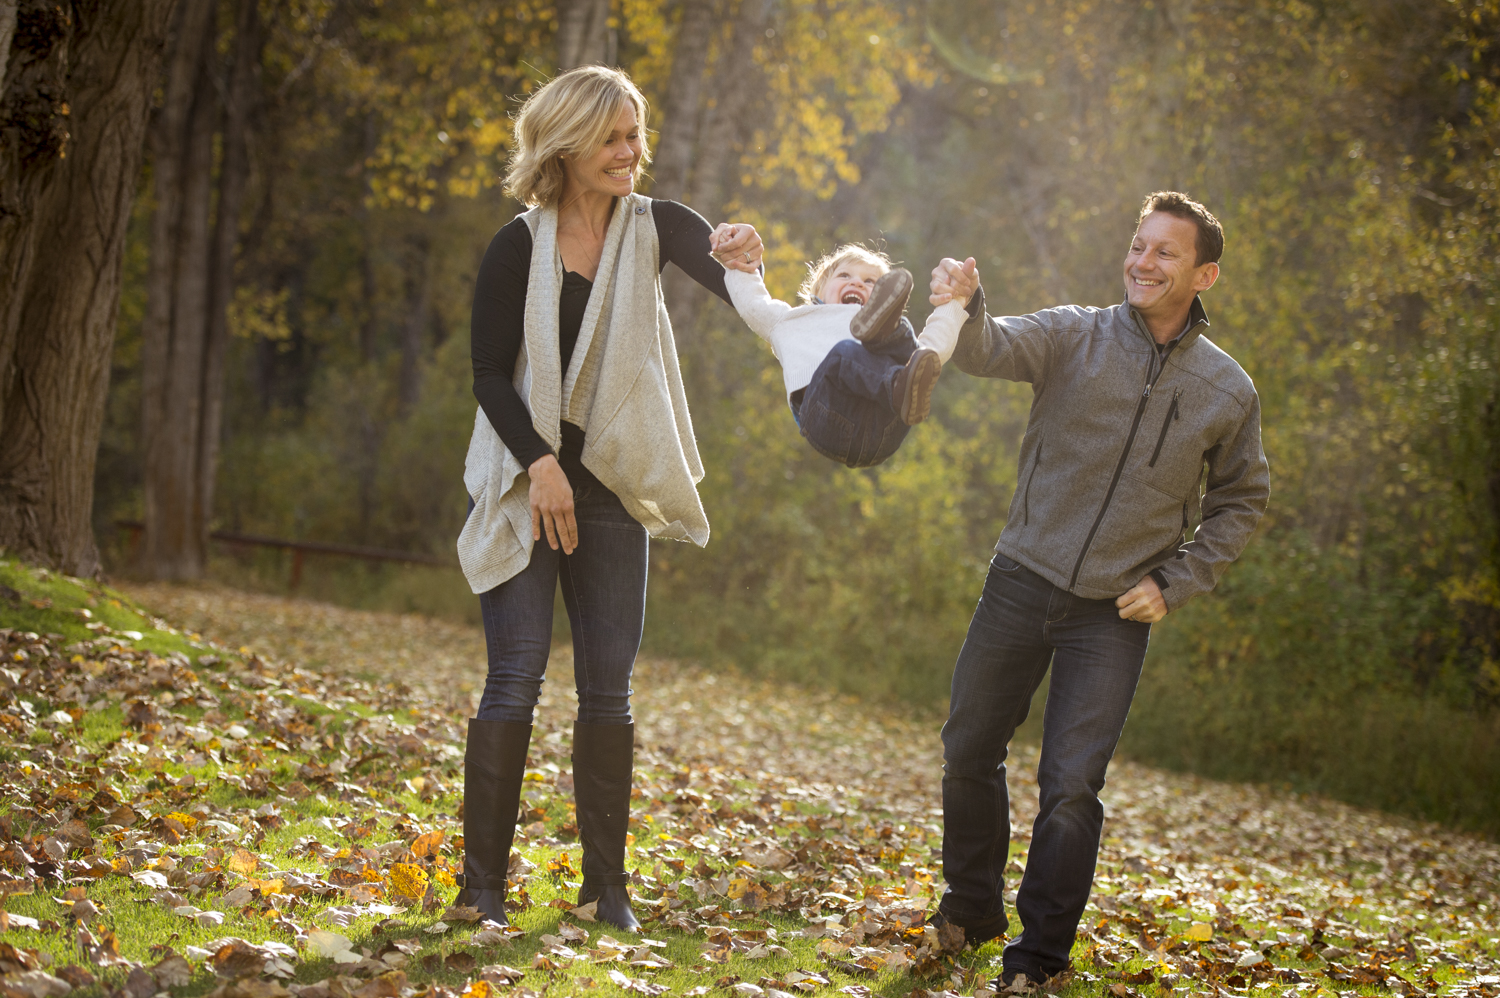 fall_lifestyle_family_leaves_candid_playing-010.jpg